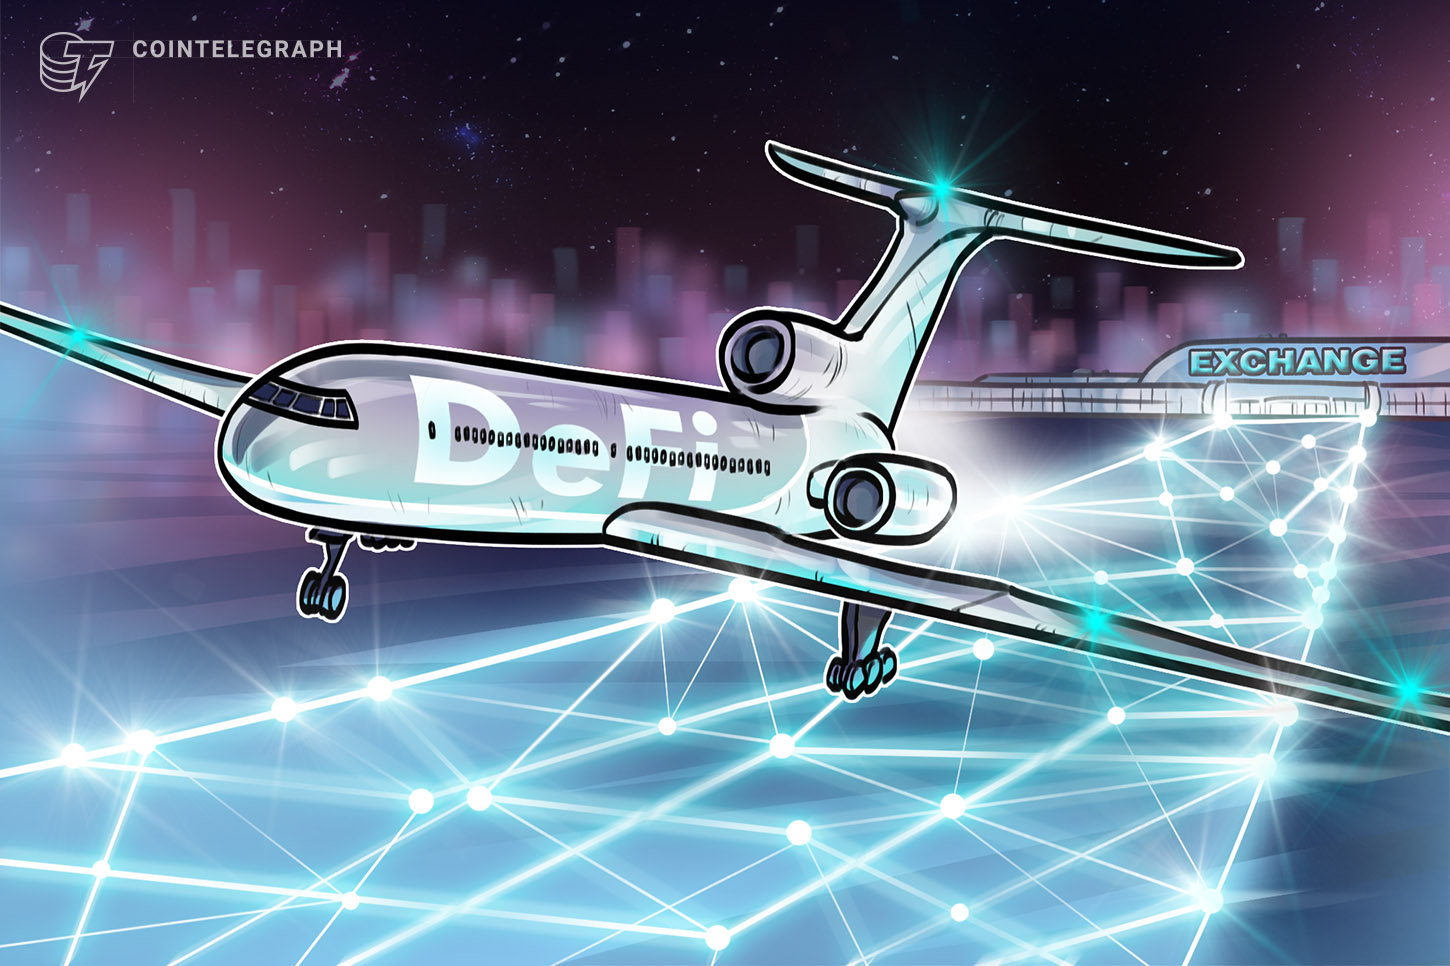 Decentralized exchanges and aggregators drive DeFi growth